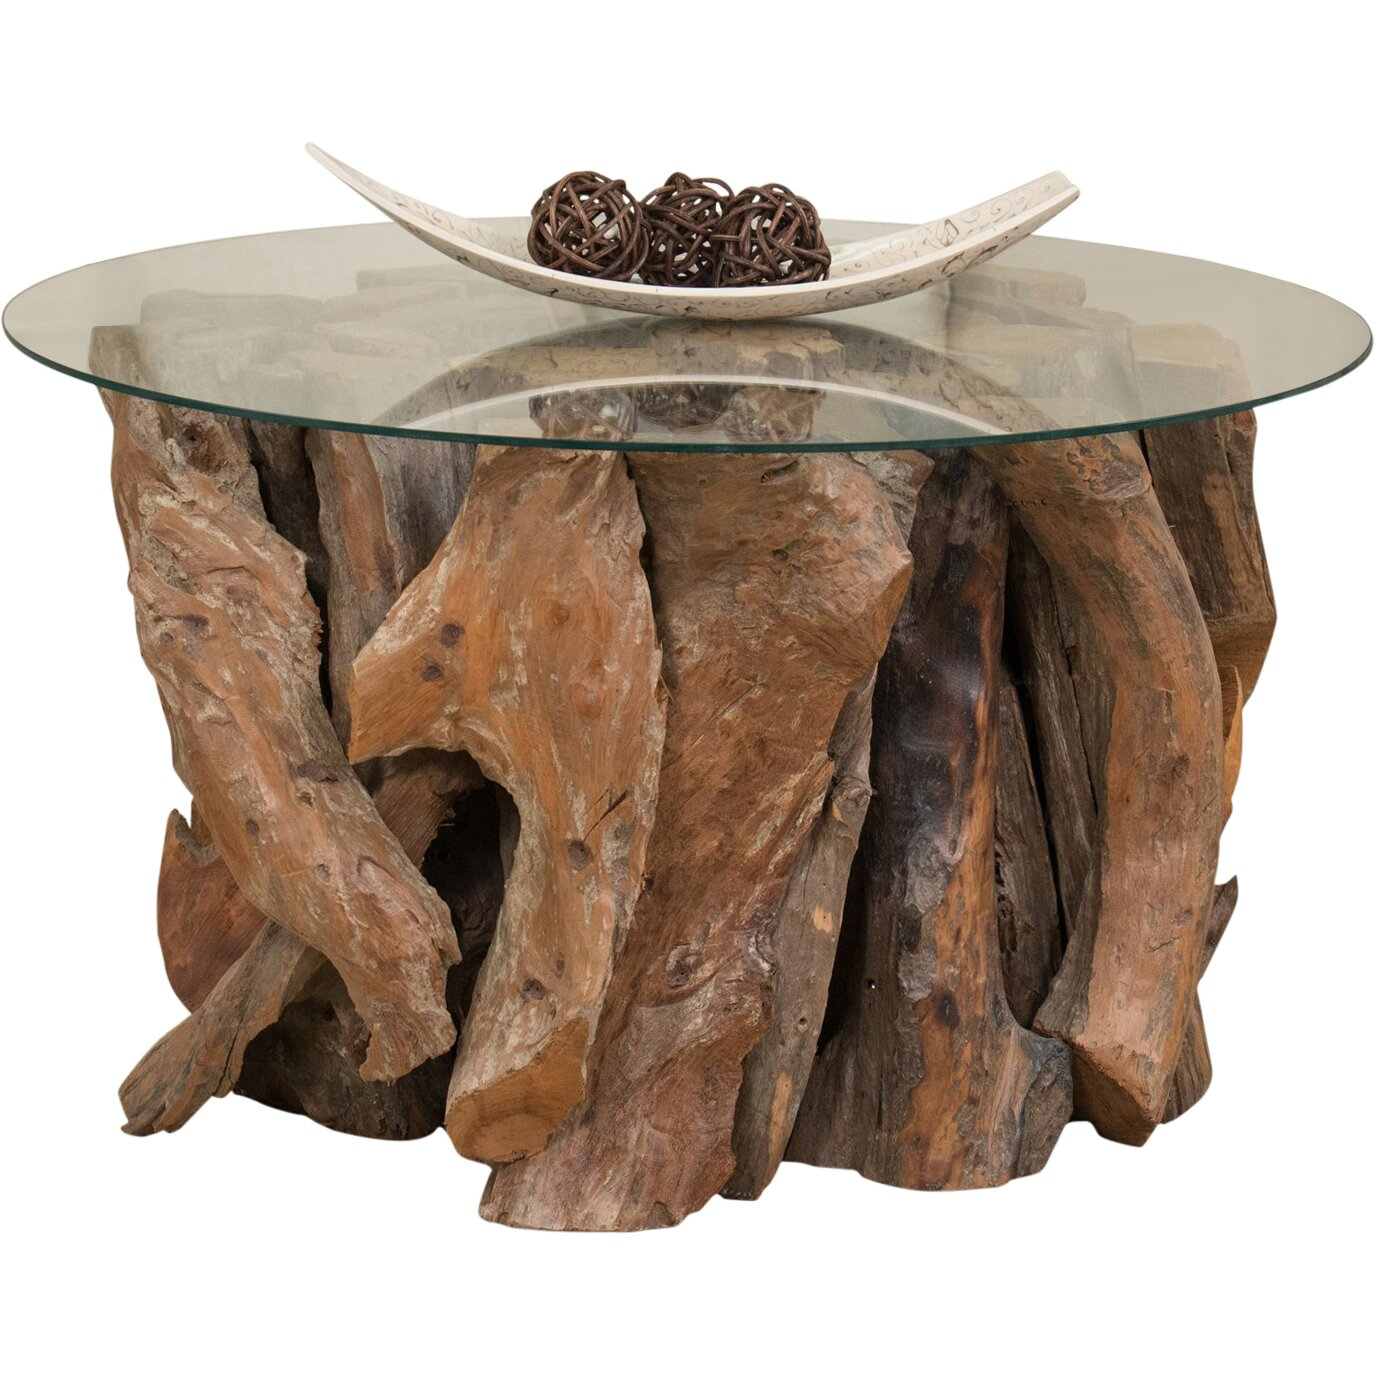 40 Square Driftwood Coffee Table: Driftwood Coffee Table Base